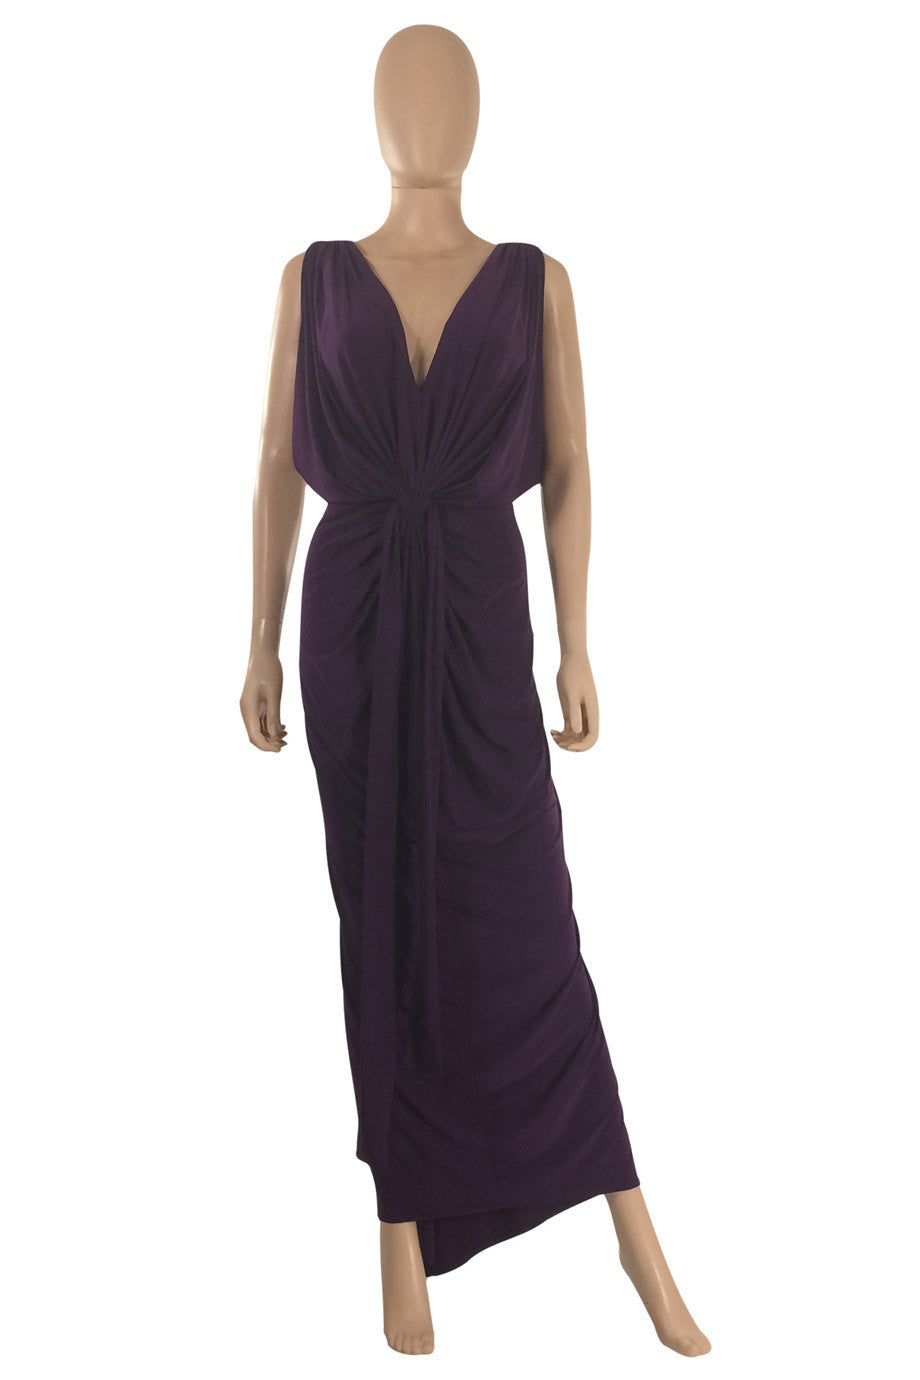 T-Bags Los Angeles Draped Purple Jersey Maxi Dress / Sz S - Style Therapy  - 1